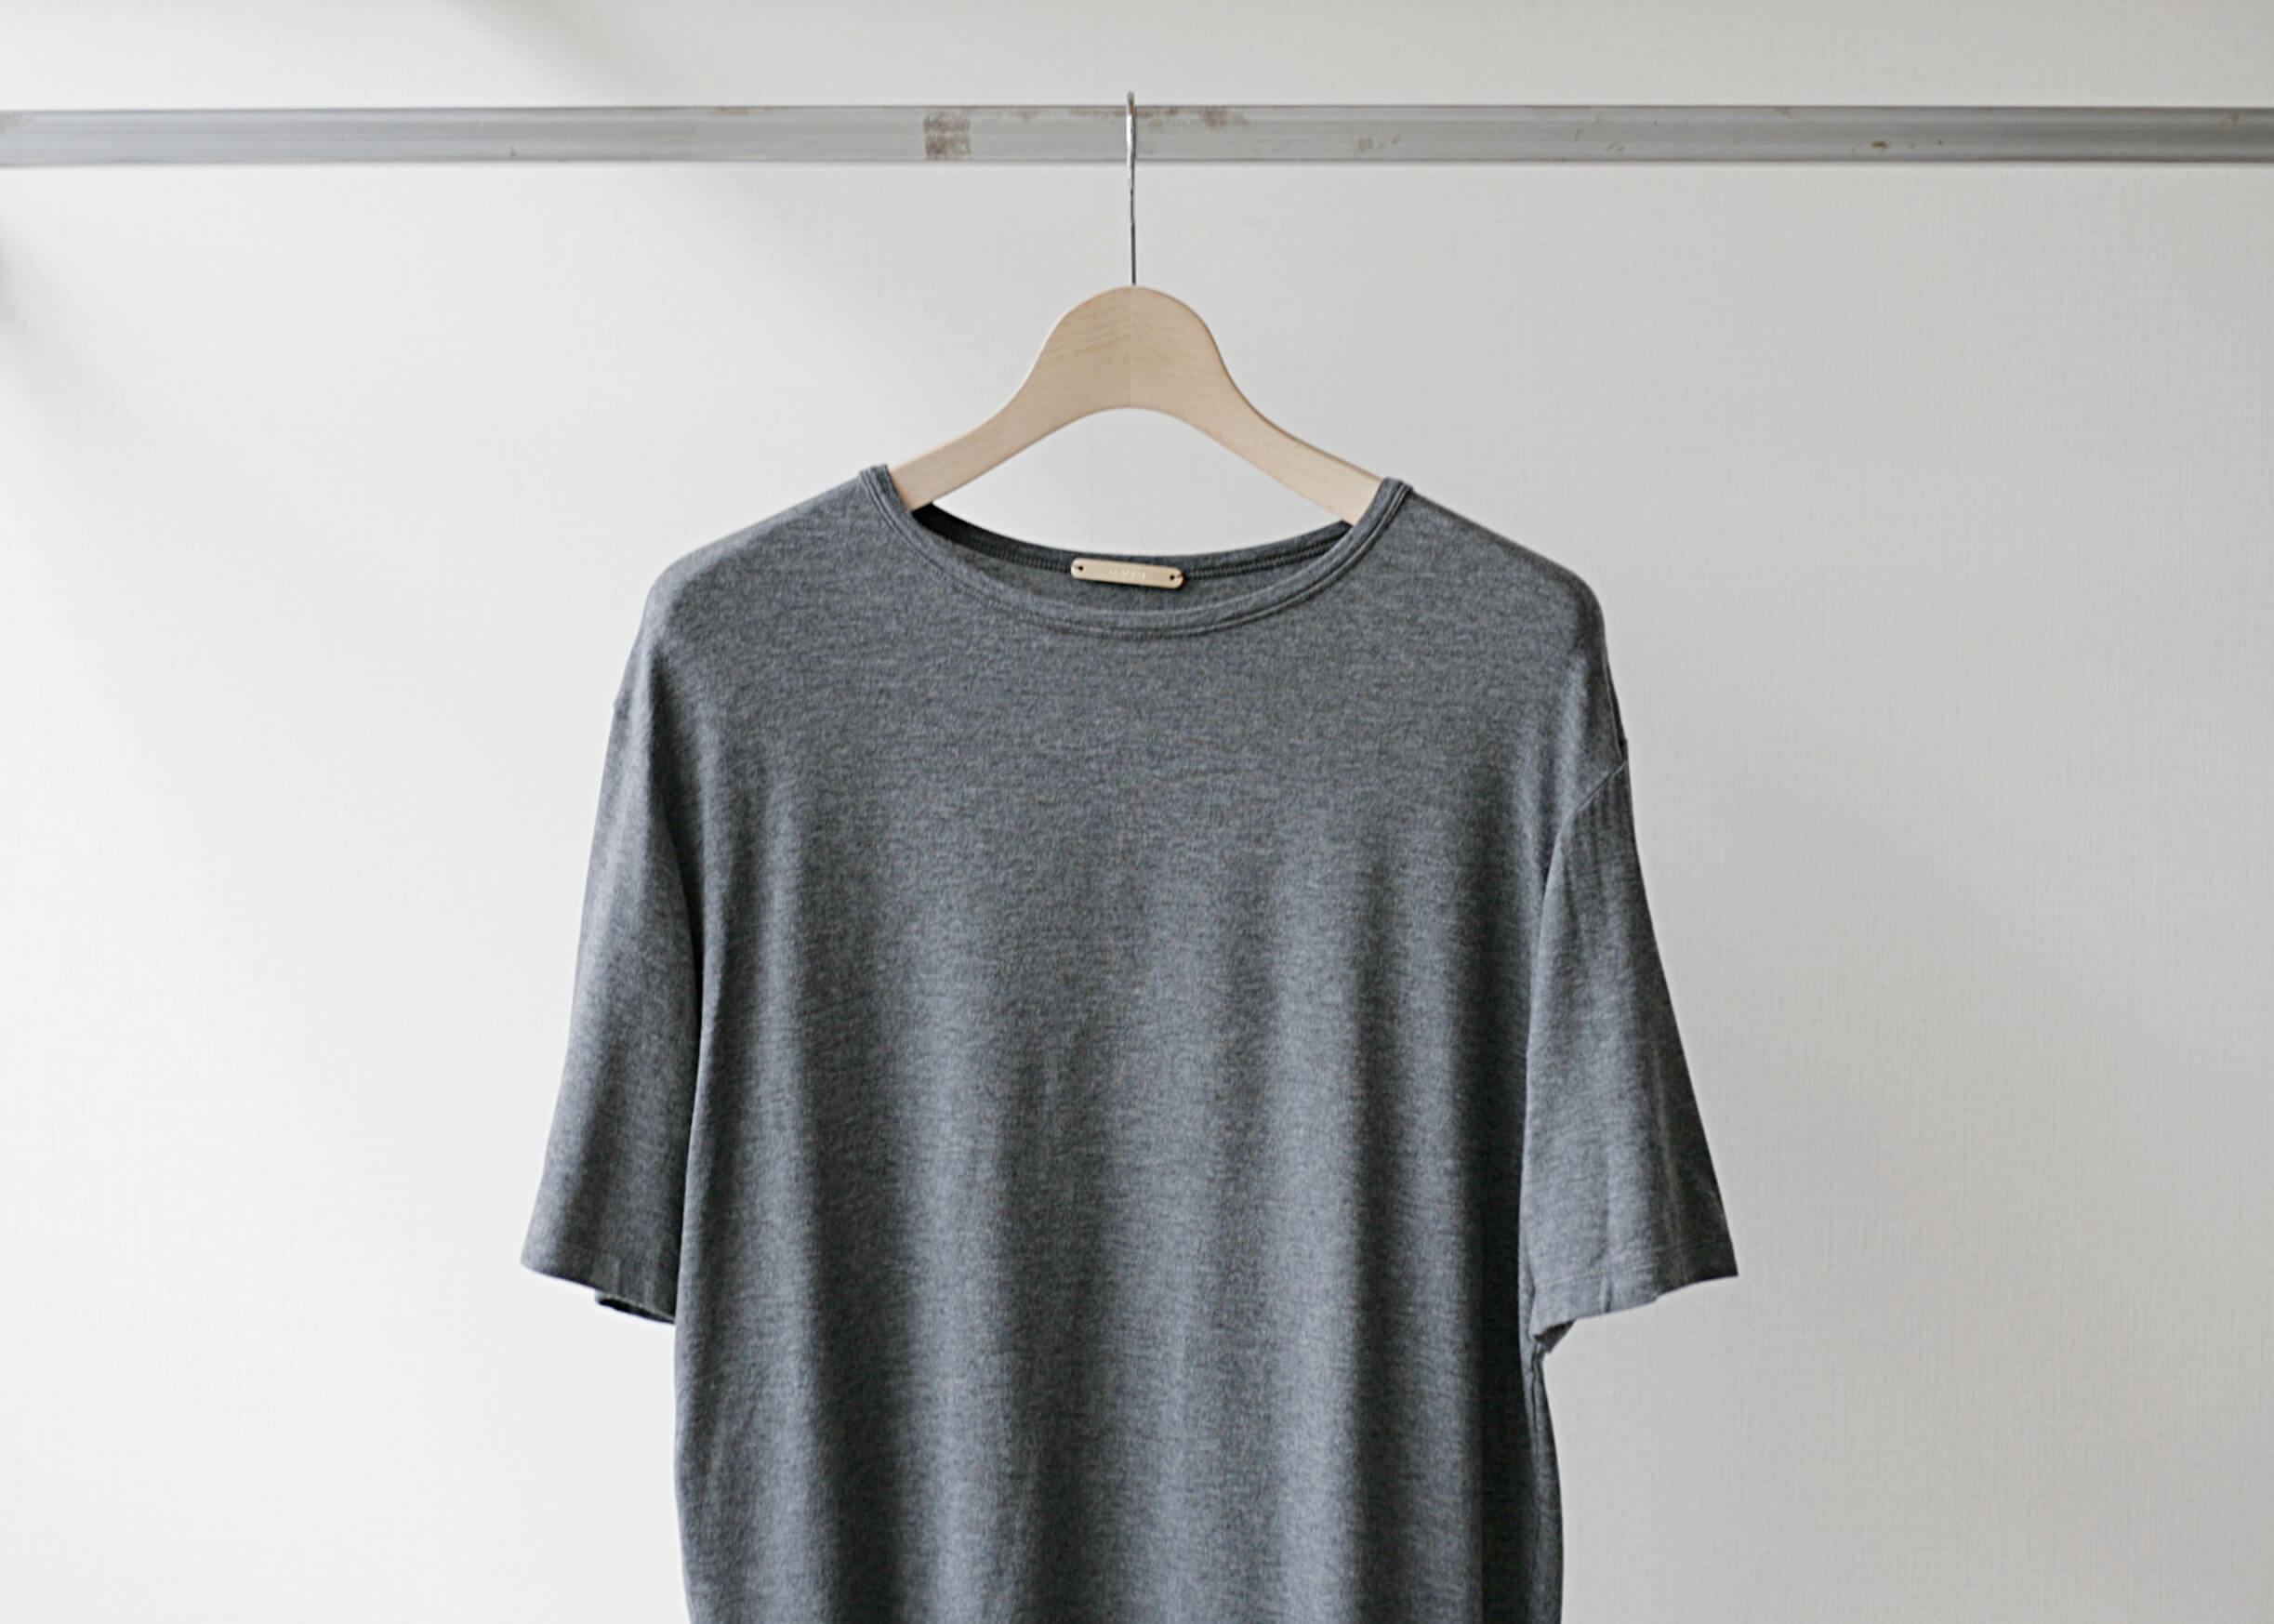 lamond tencel washable s/s gray 正面上半身アップ